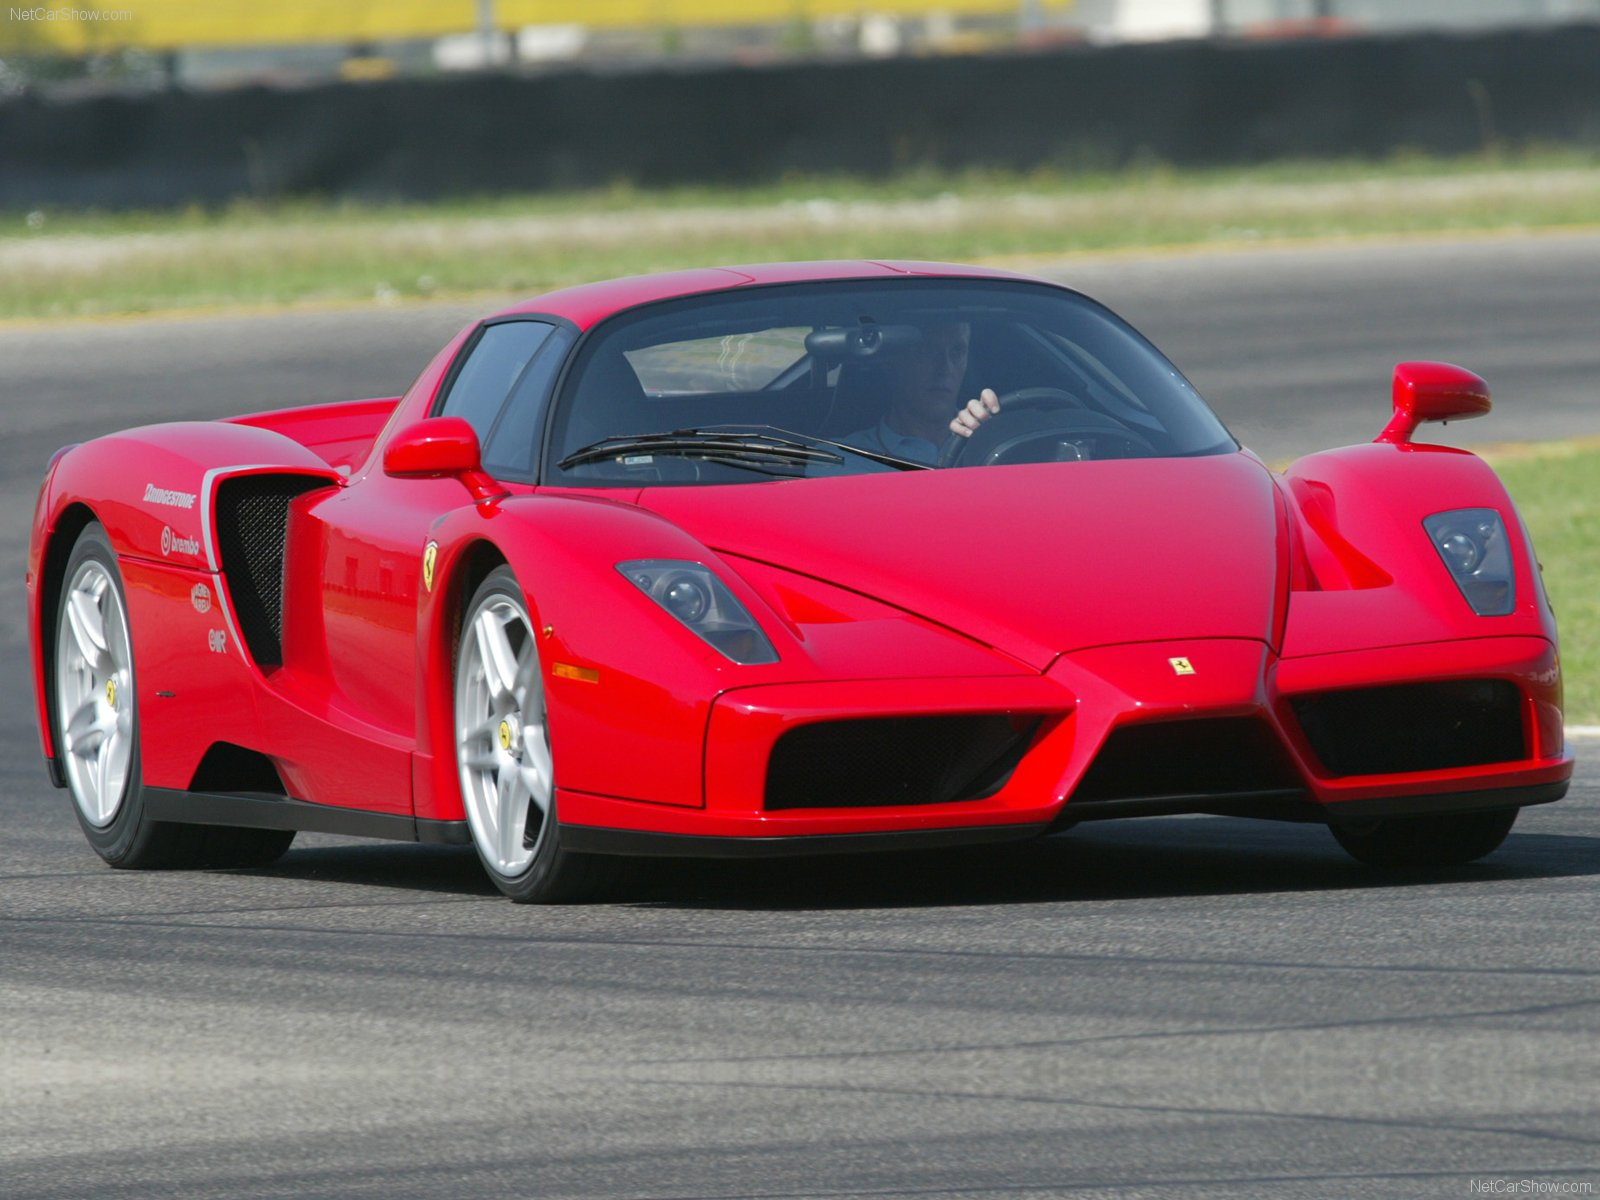 The Top 10 Ferrari Models of All,Time